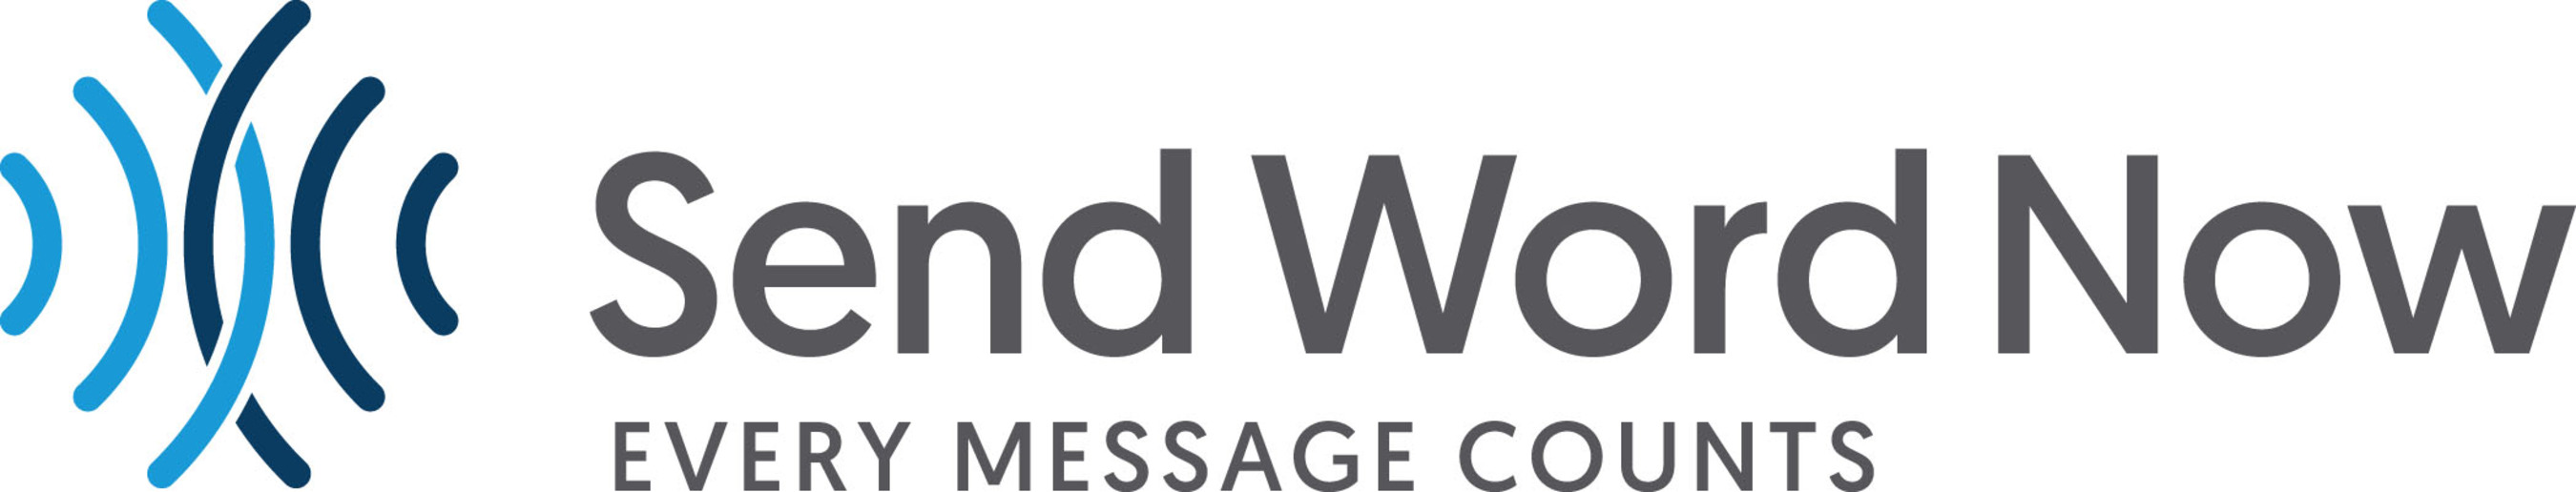 Send Word Now is the worldwide leader in enterprise communications and mass notification.